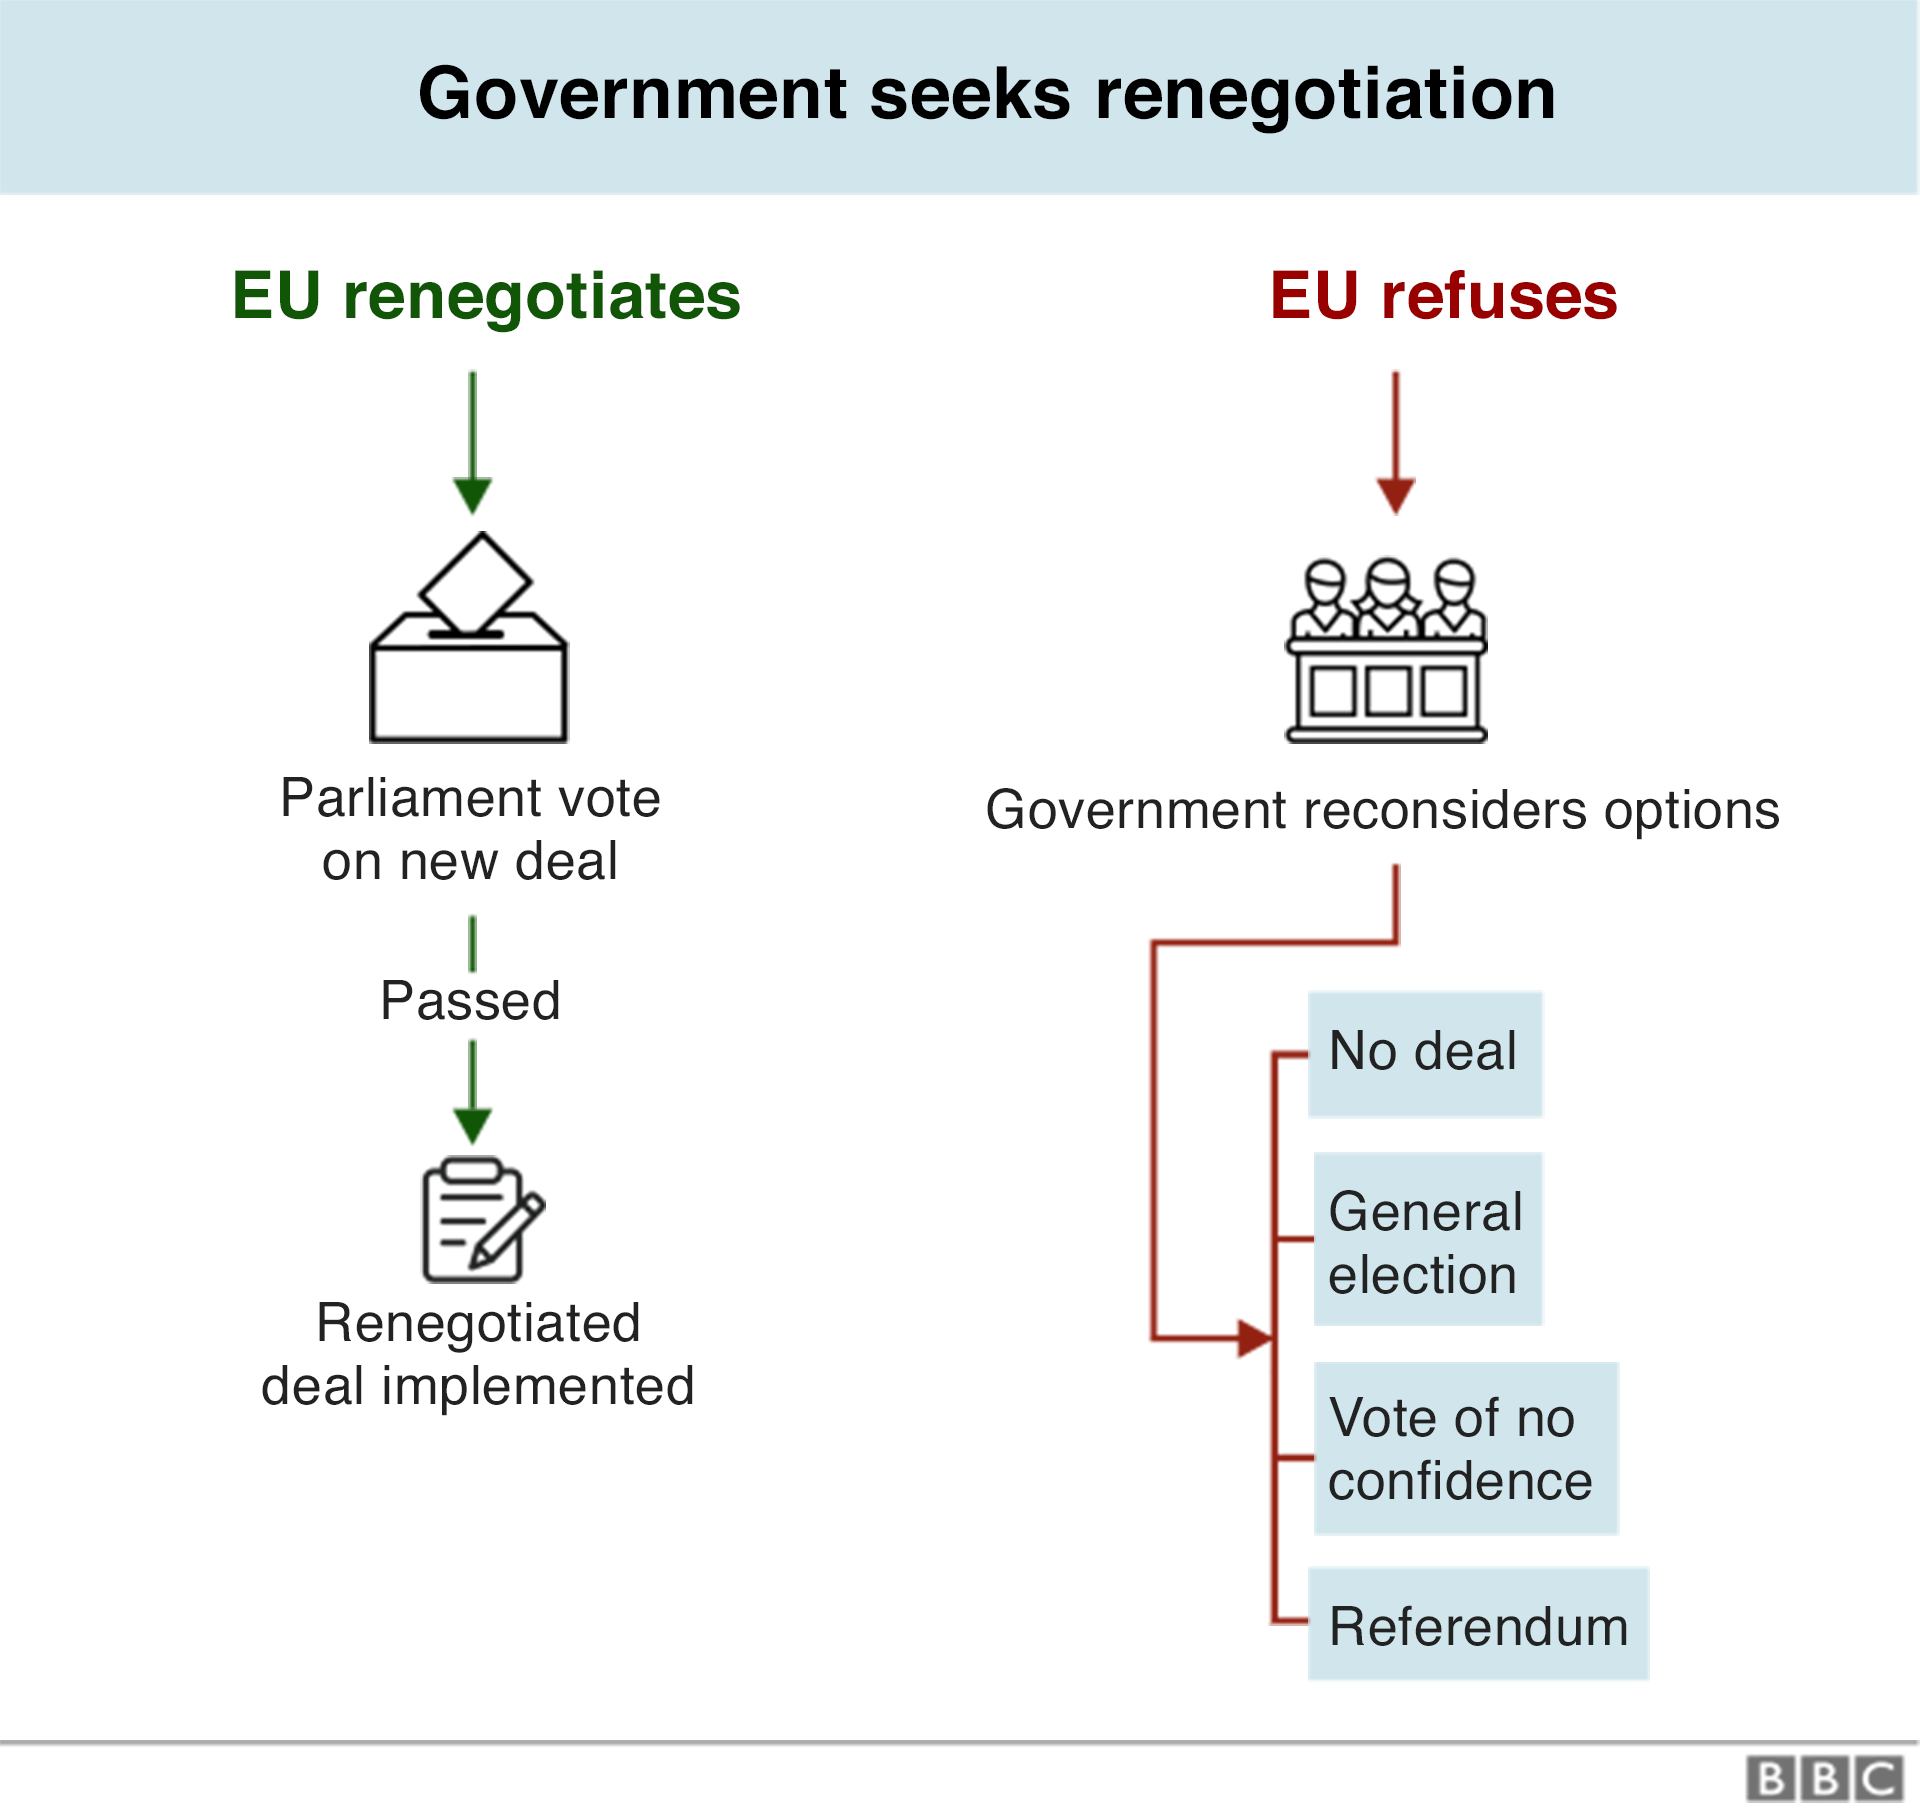 Chart on how the government seeks renegotiation